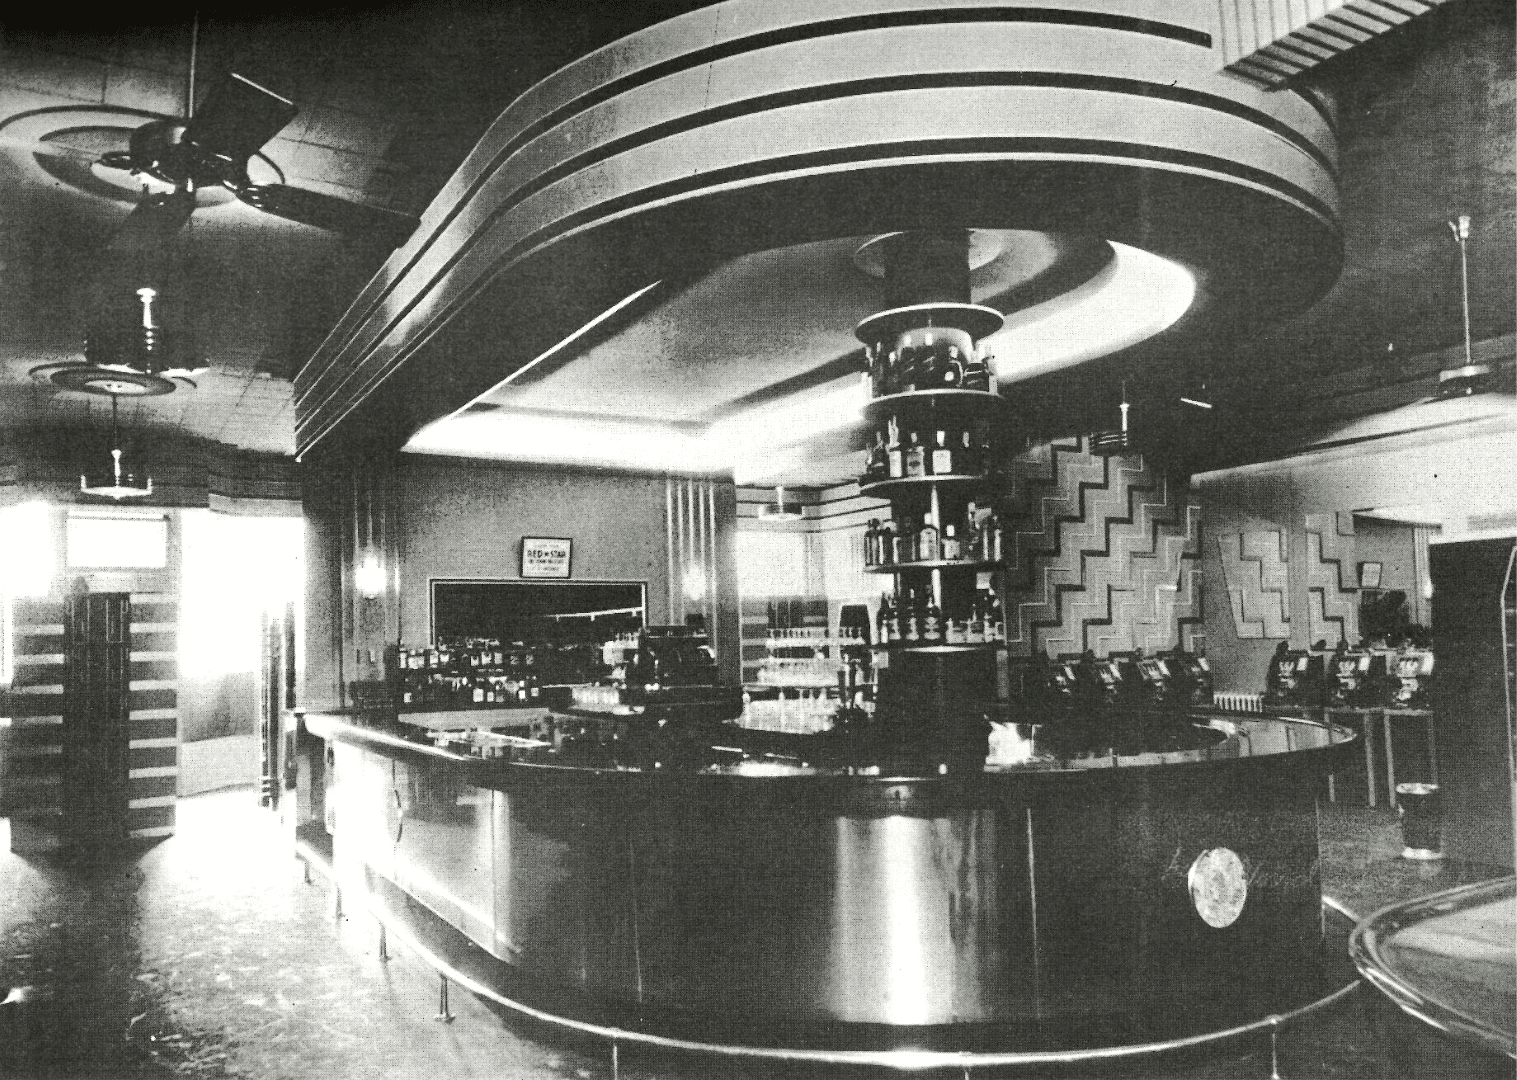 Interior vintage photo of the stainless steel bar at Whitey's